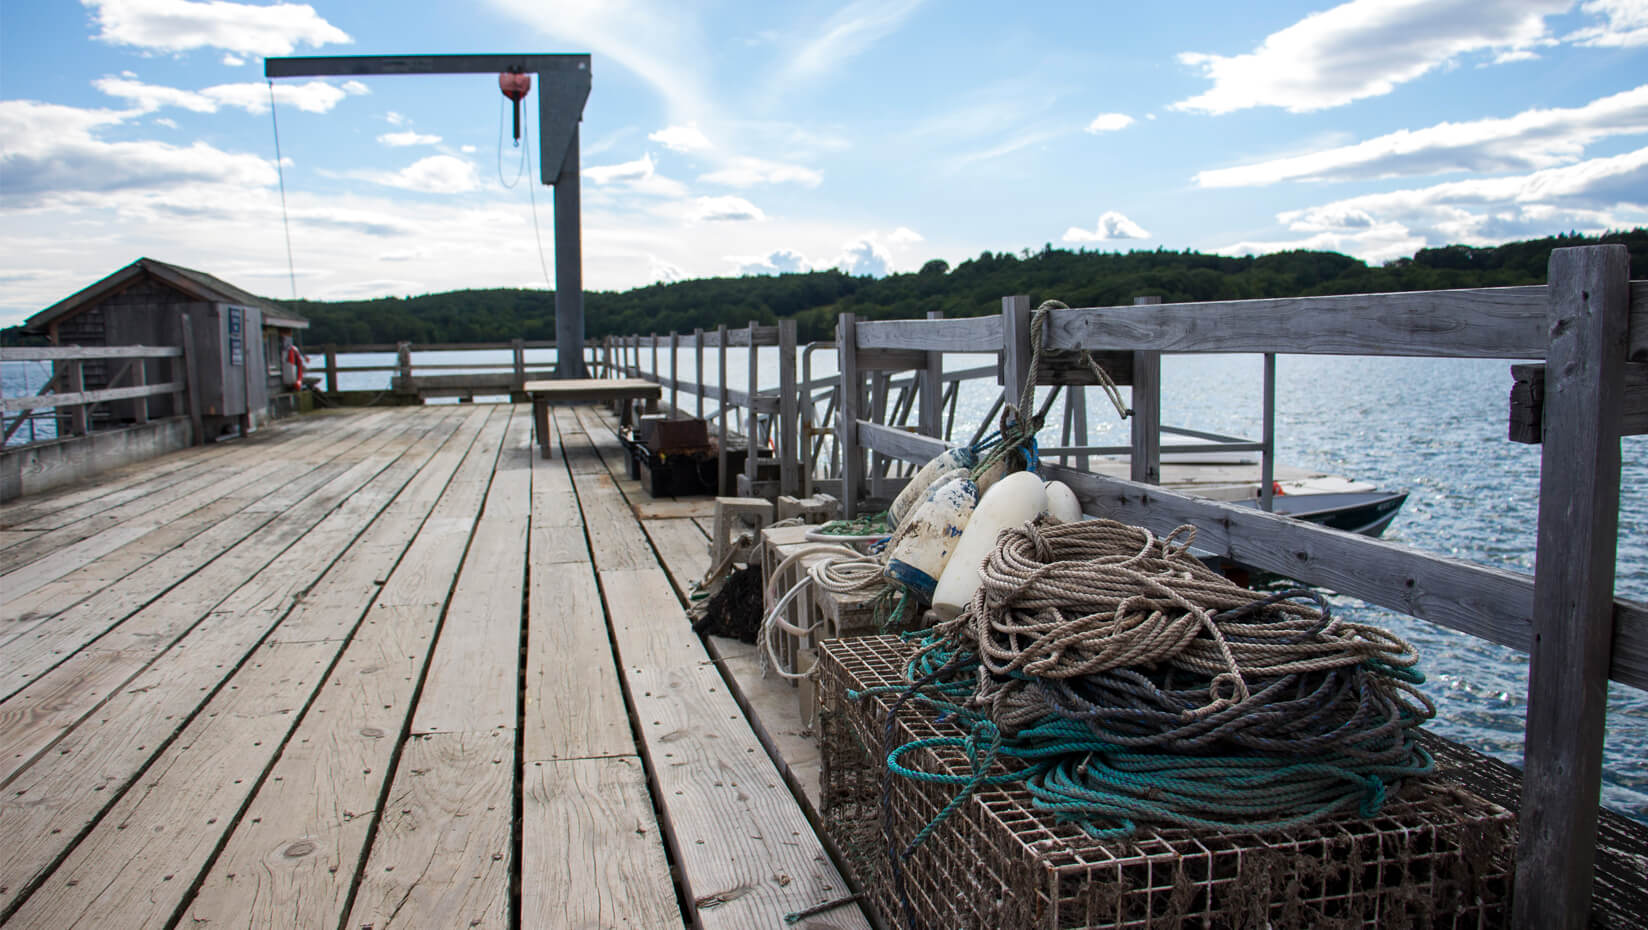 featured image for Ph.D. candidate examines effects of licensing on resilience of Maine's fisheries